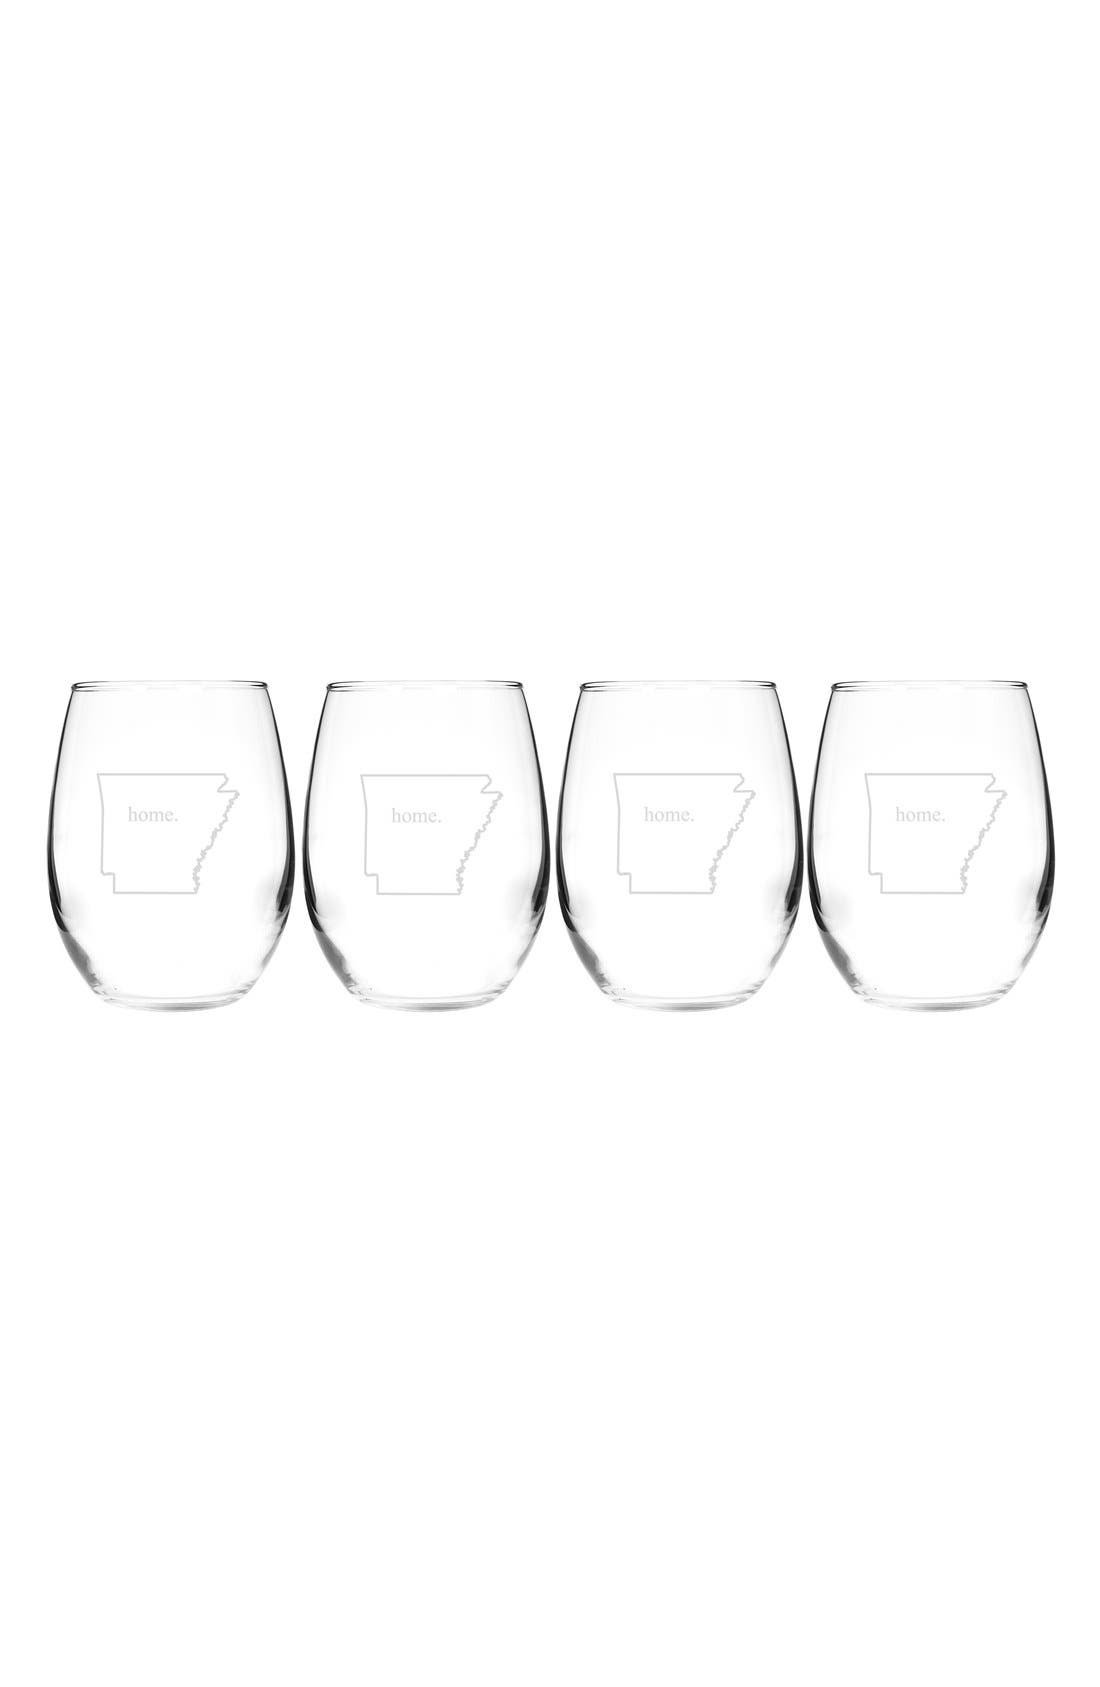 Home State Set of 4 Stemless Wine Glasses,                             Main thumbnail 4, color,